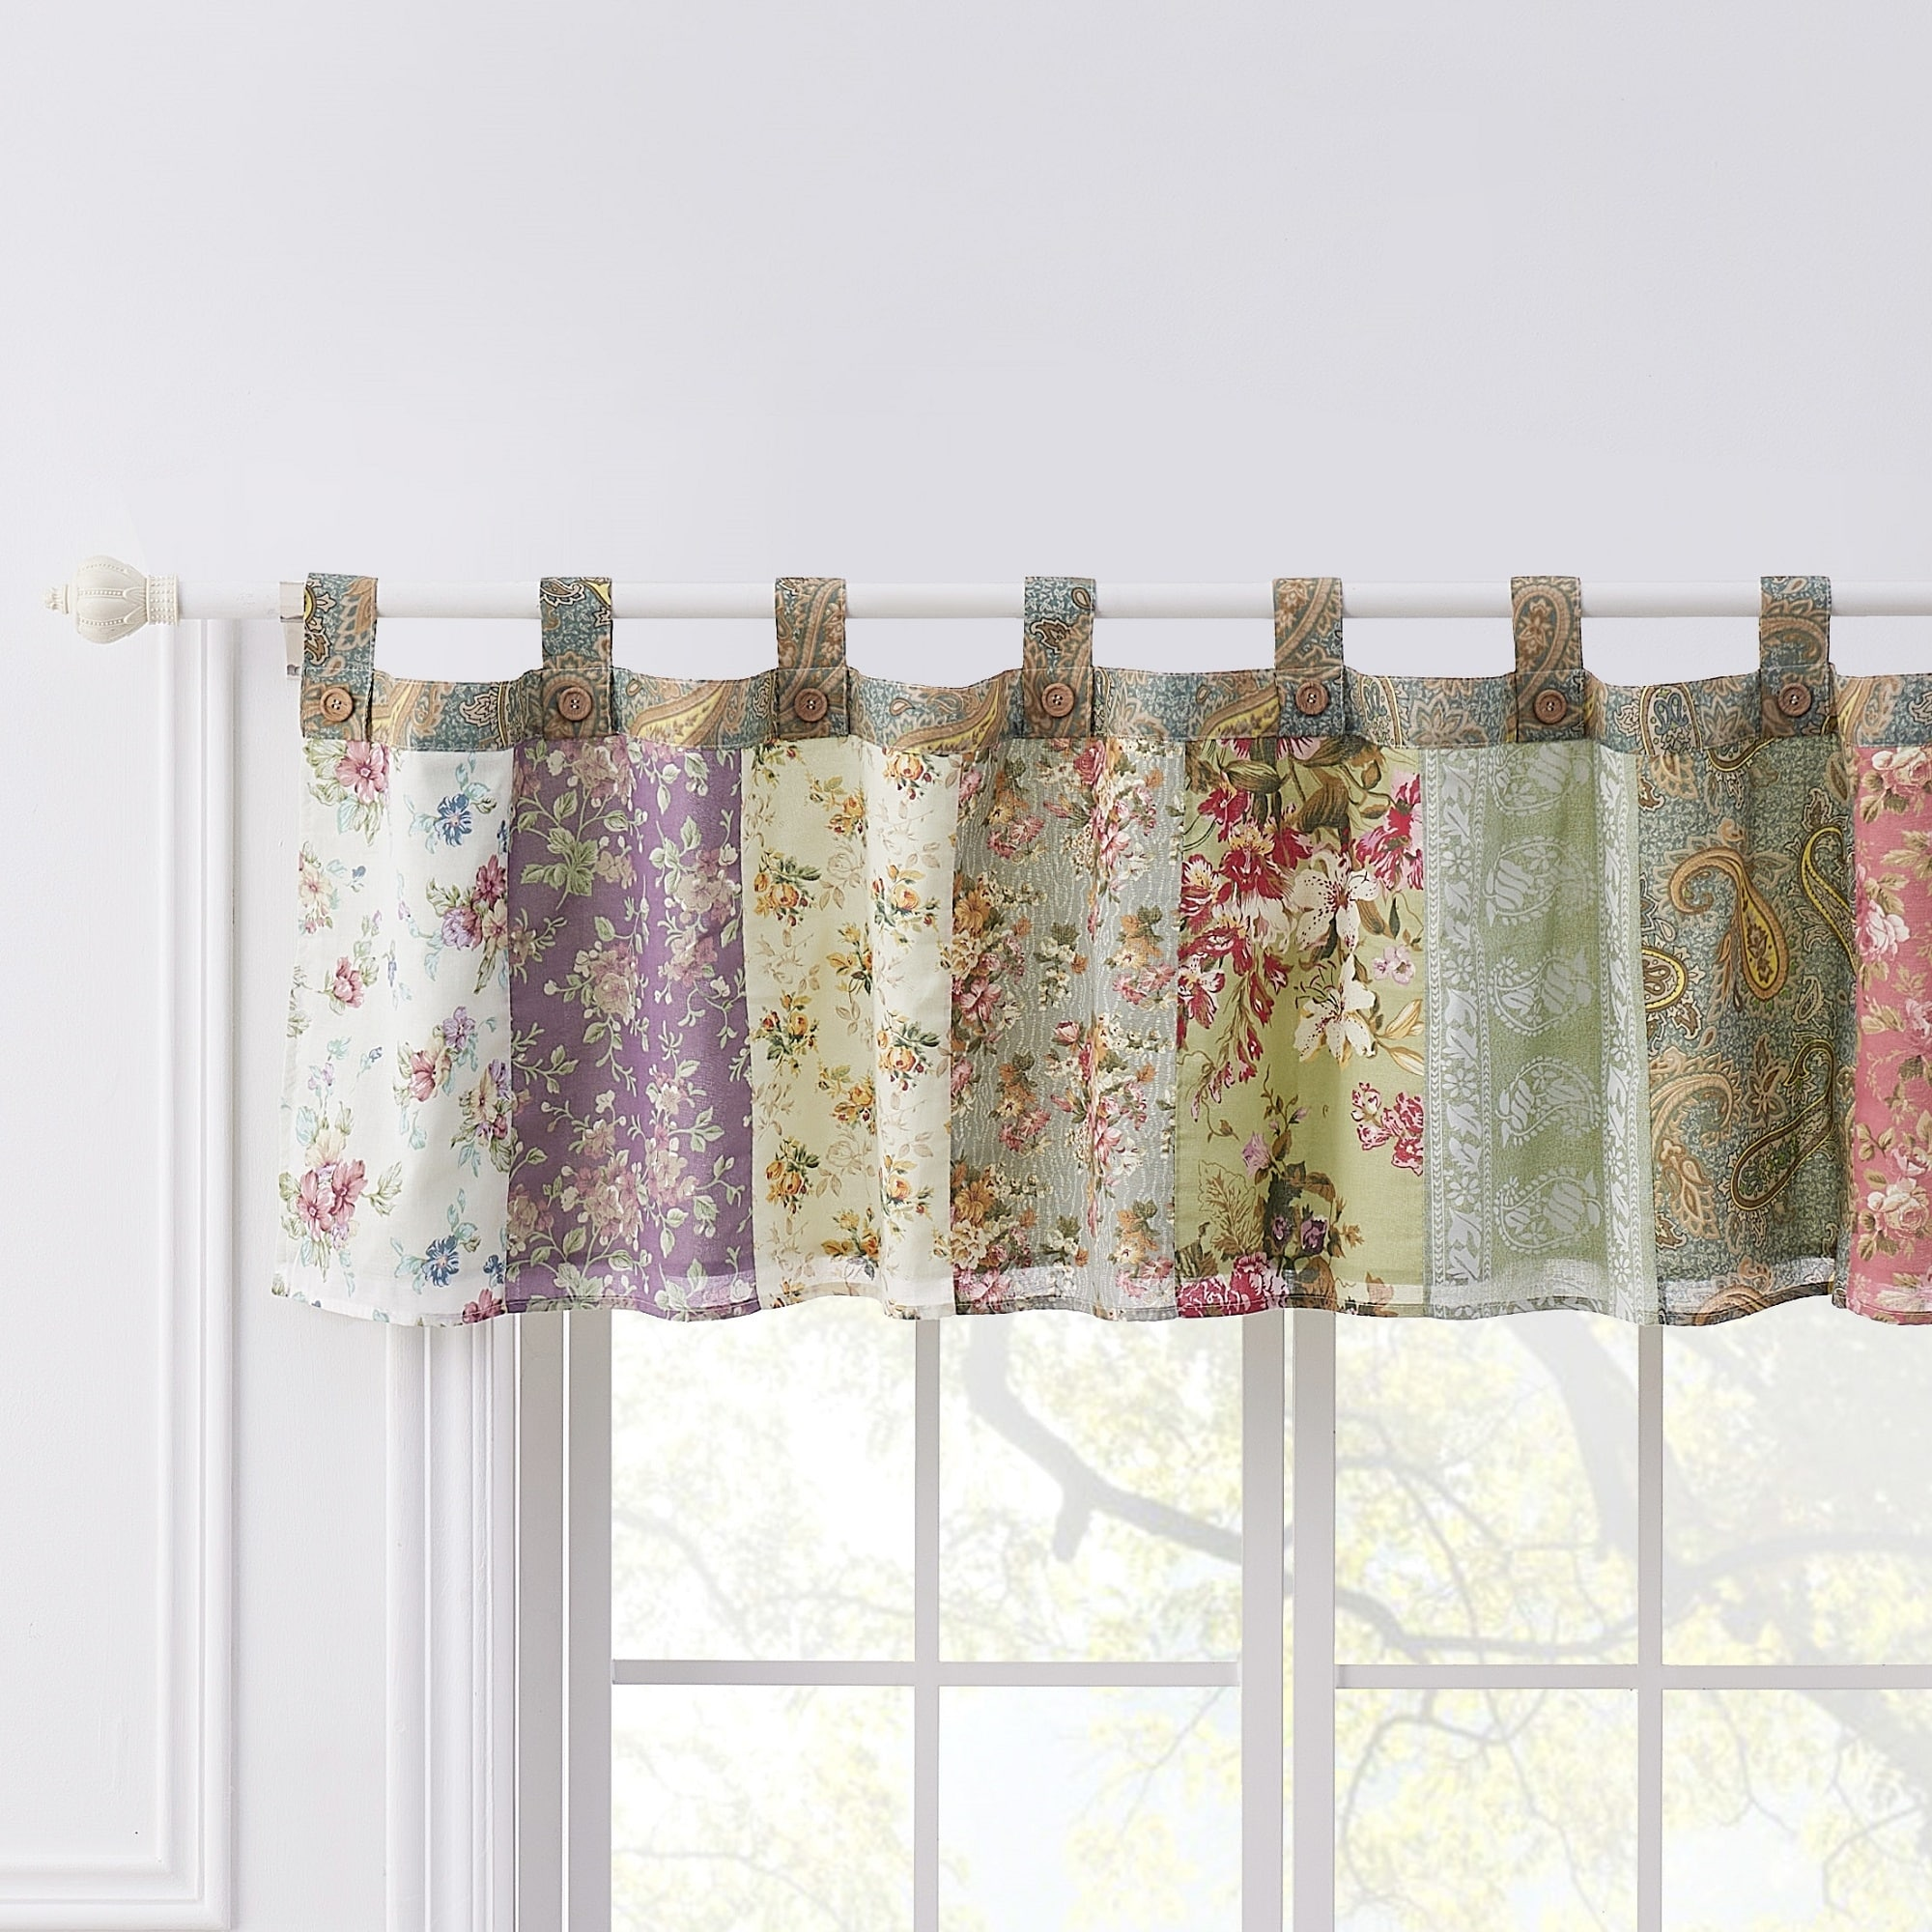 Buy Patchwork Valances Online At Overstock Our Best Window Treatments Deals